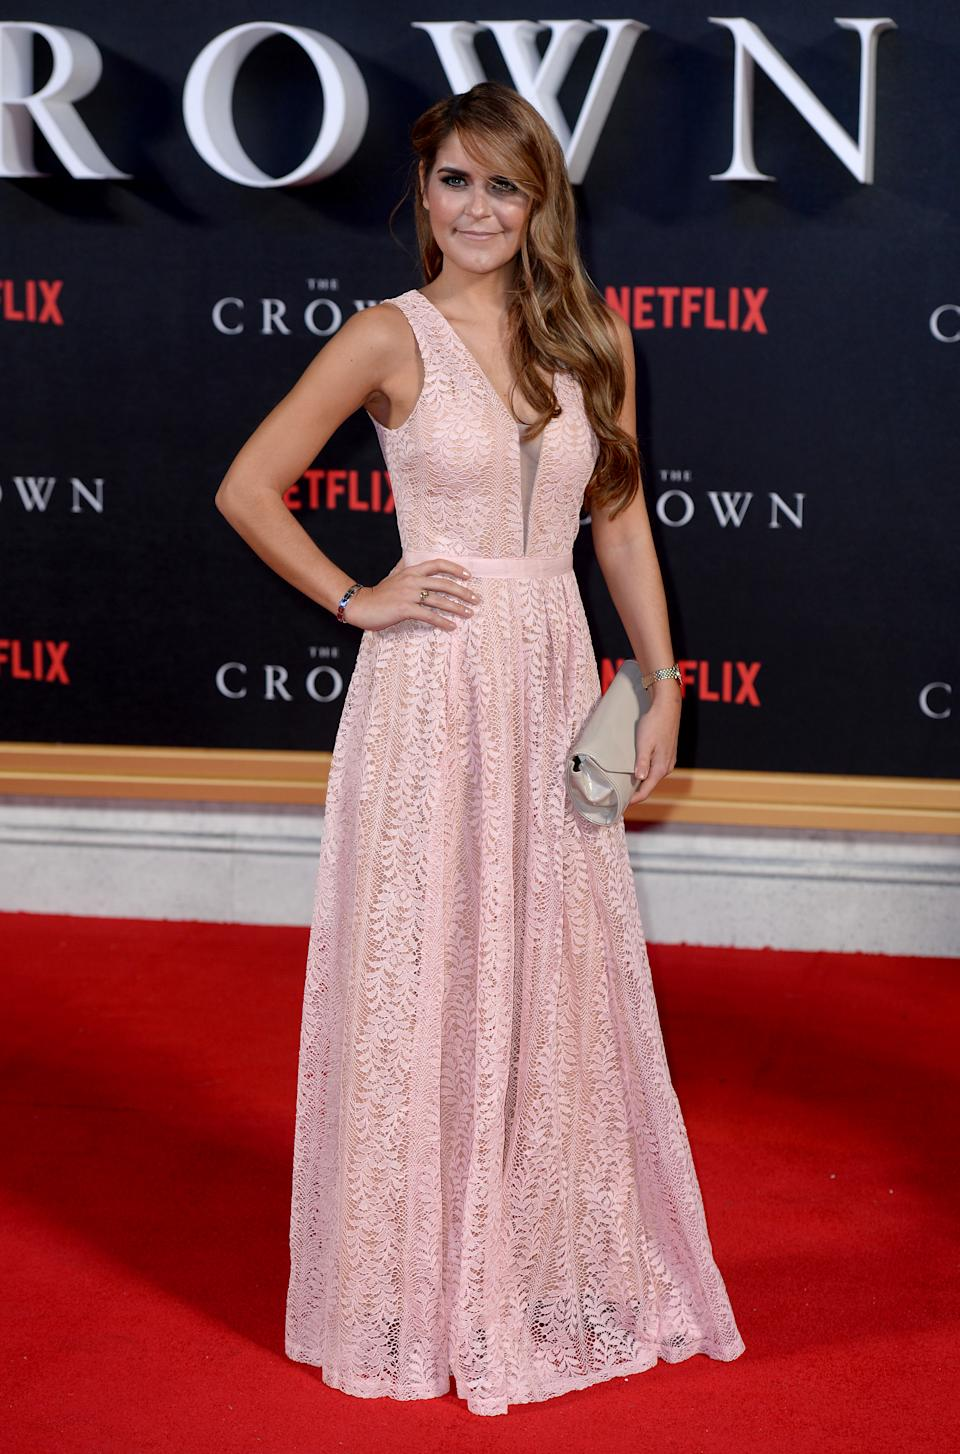 Gemma Oaten attending the premiere of The Crown at Odeon Leicester Square, London. Photo credit should read: Doug Peters/EMPICS Entertainment